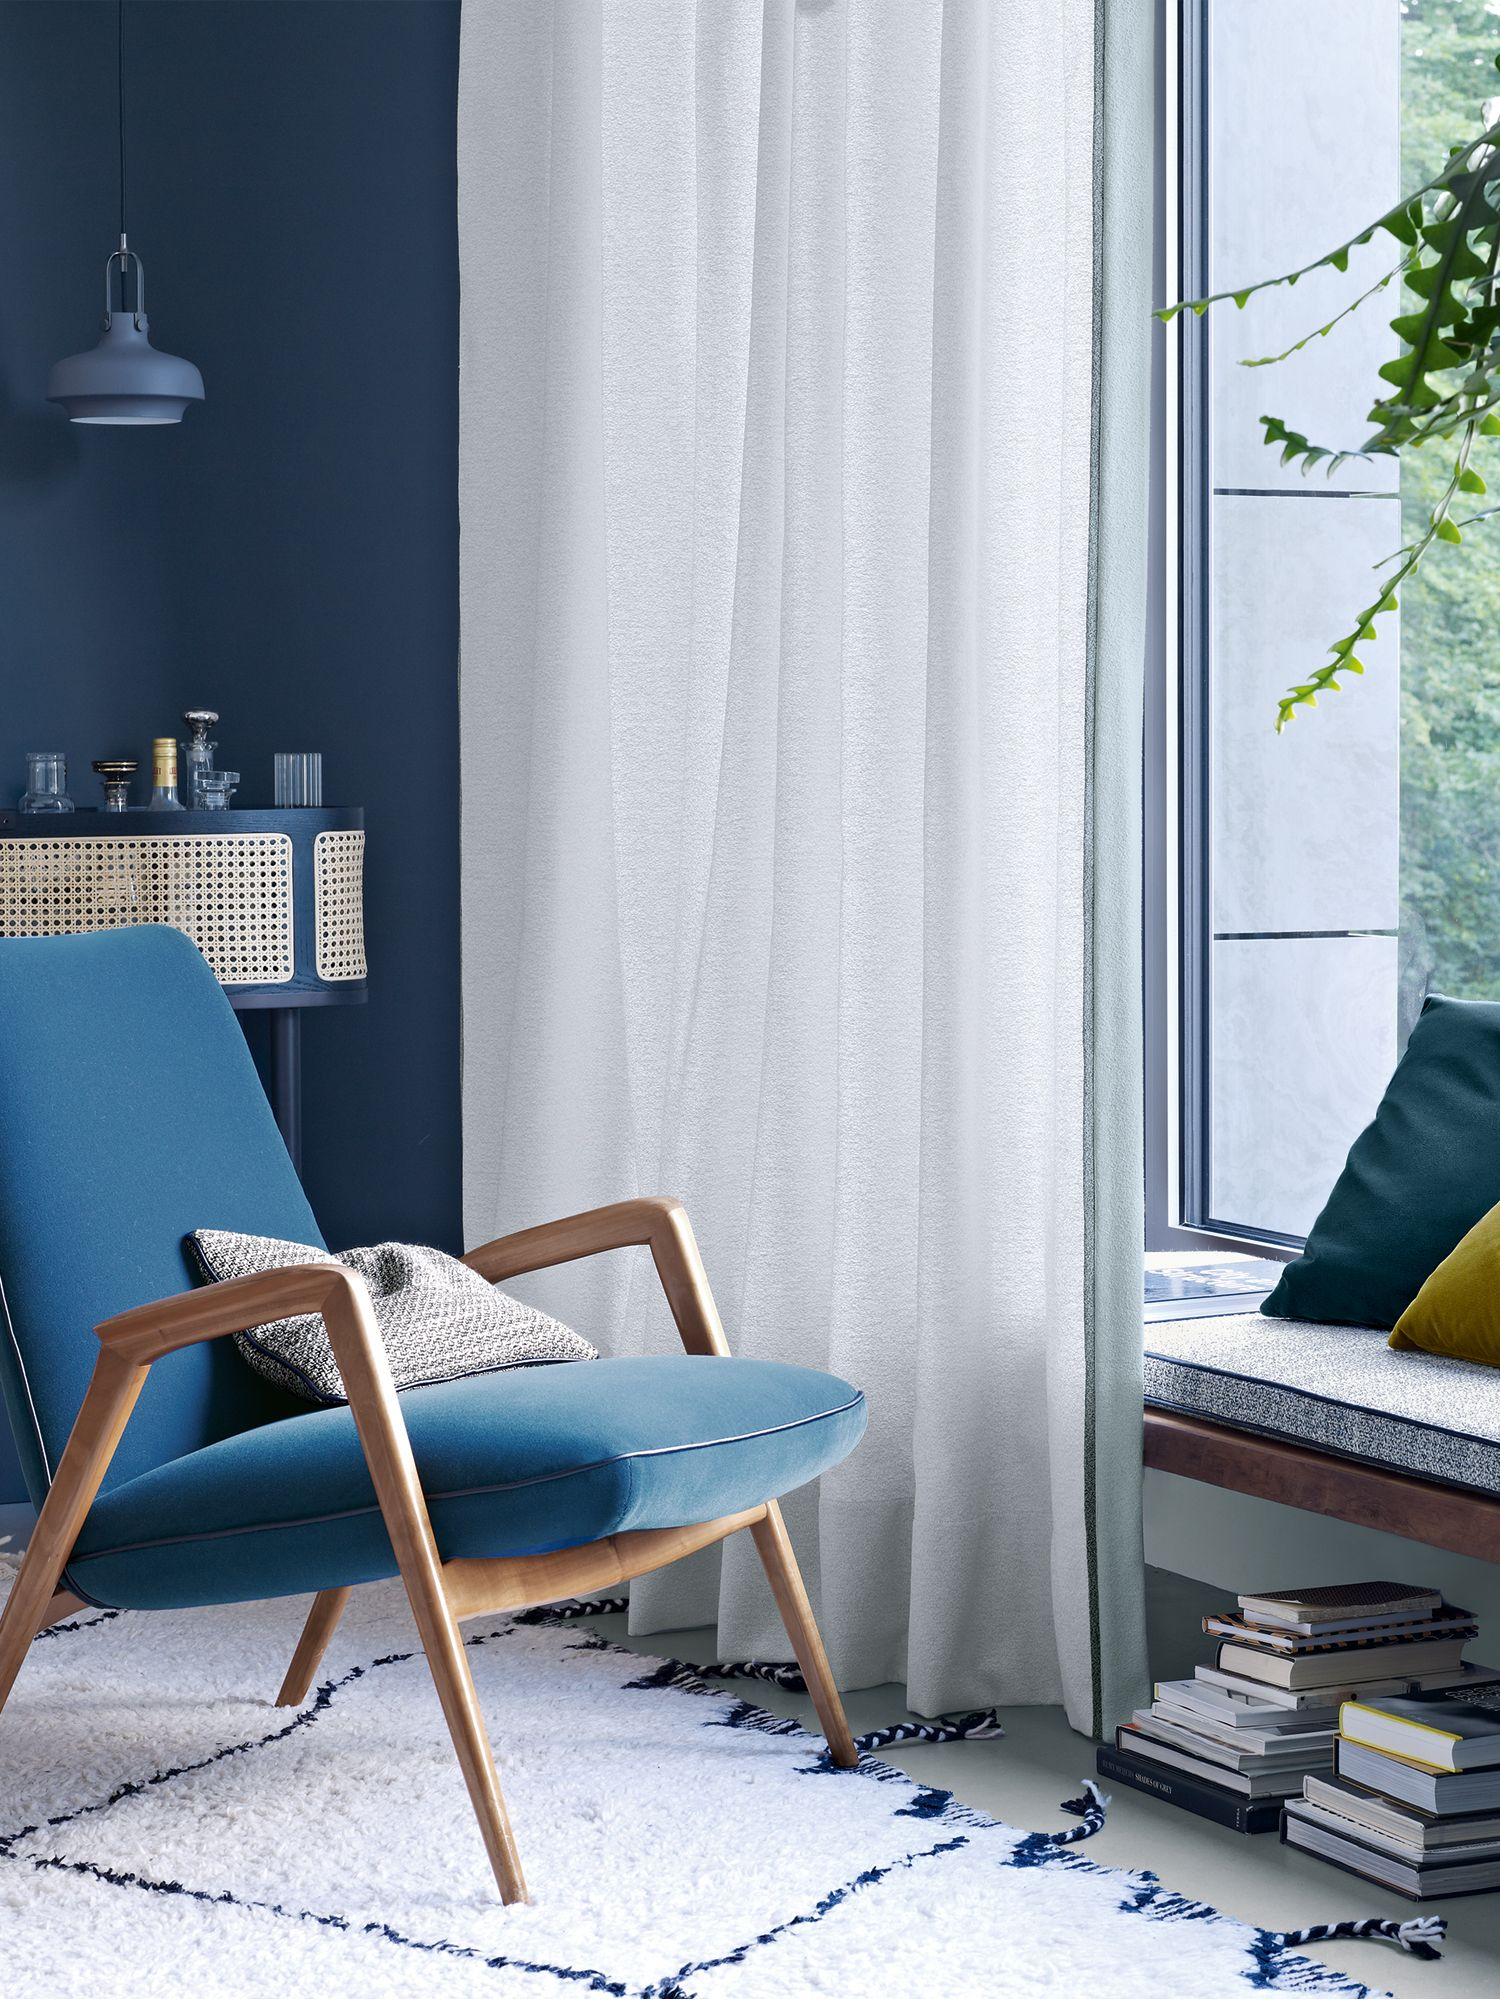 Re-Mix from Modern Graphics, the Zimmer+Rohde Autumn 2020 collection from Cetec